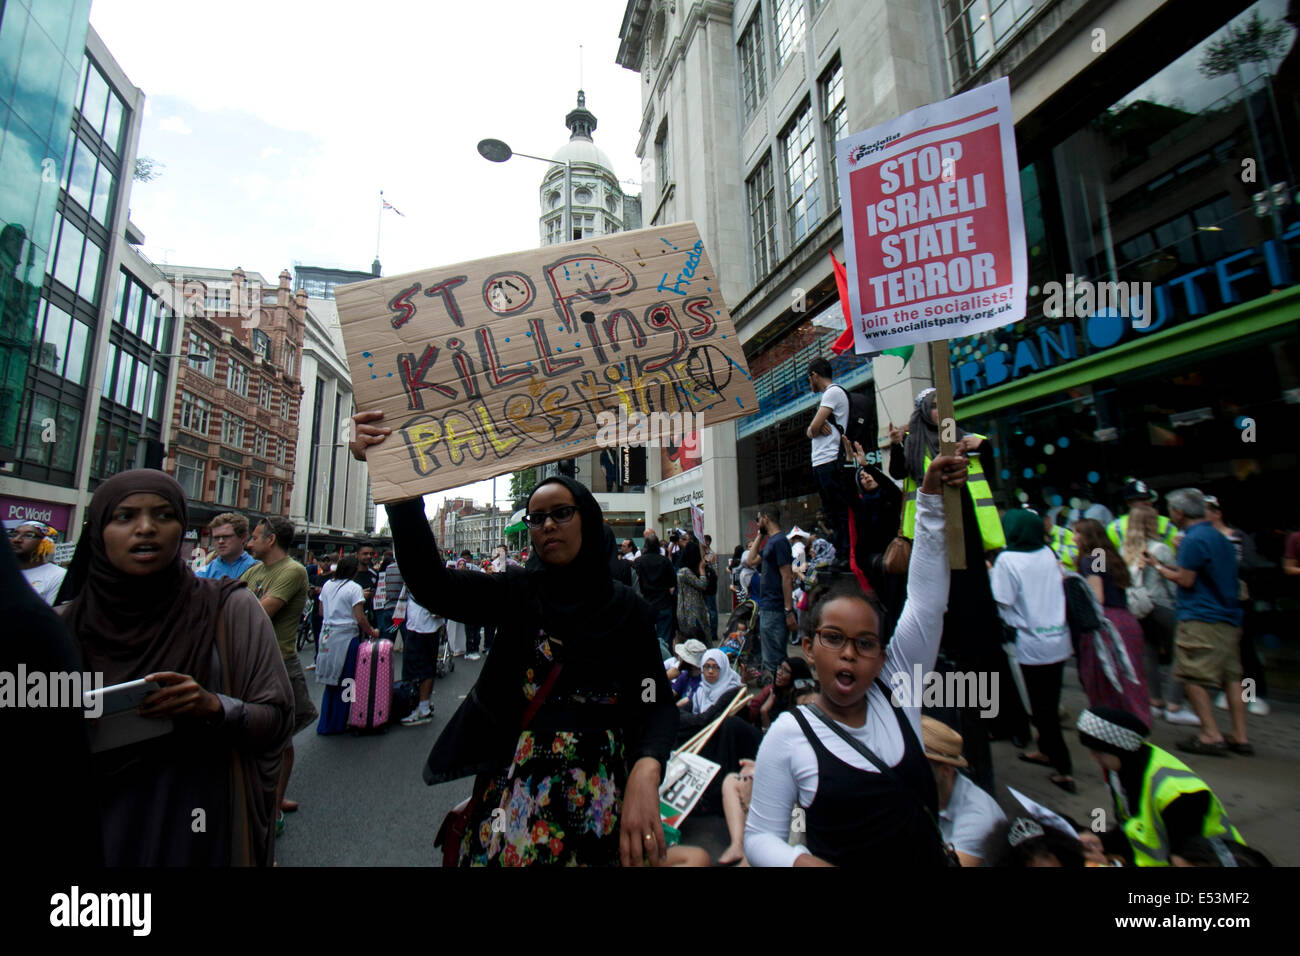 London UK. 19th July 2014.  Protesters with placards during a rally outside the Israel embassy in London to show - Stock Image